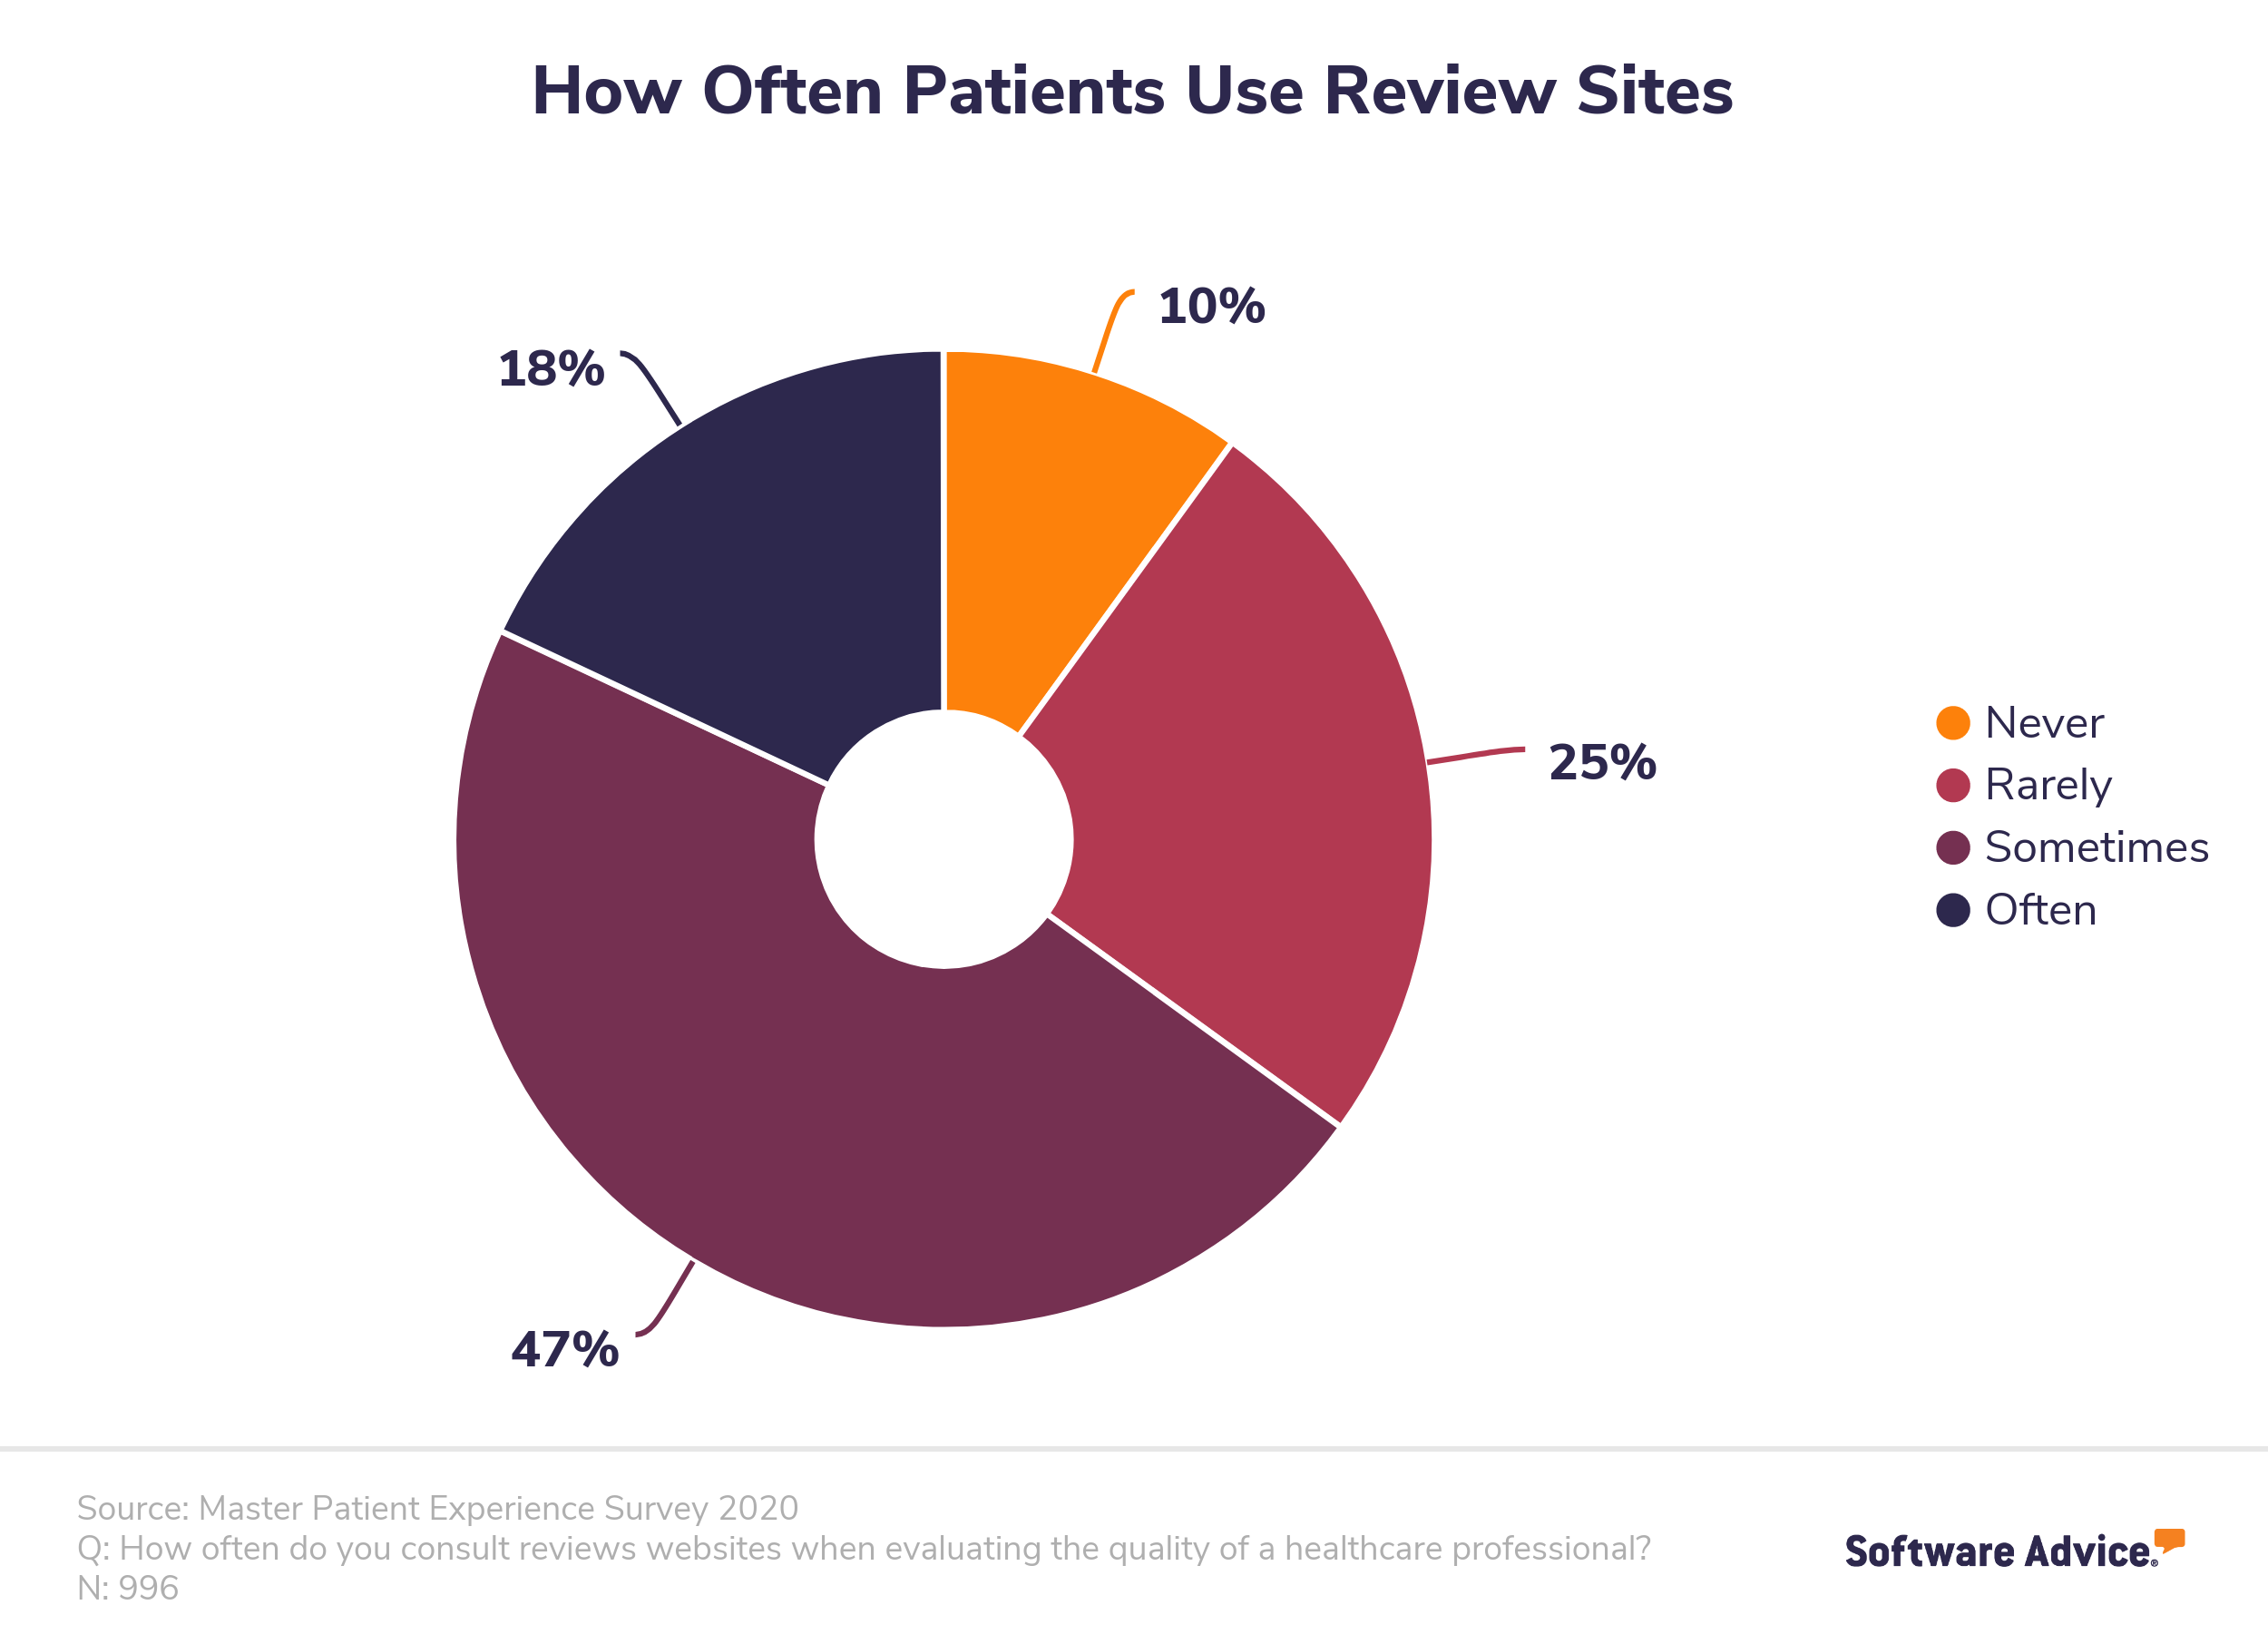 How often patients use review sites